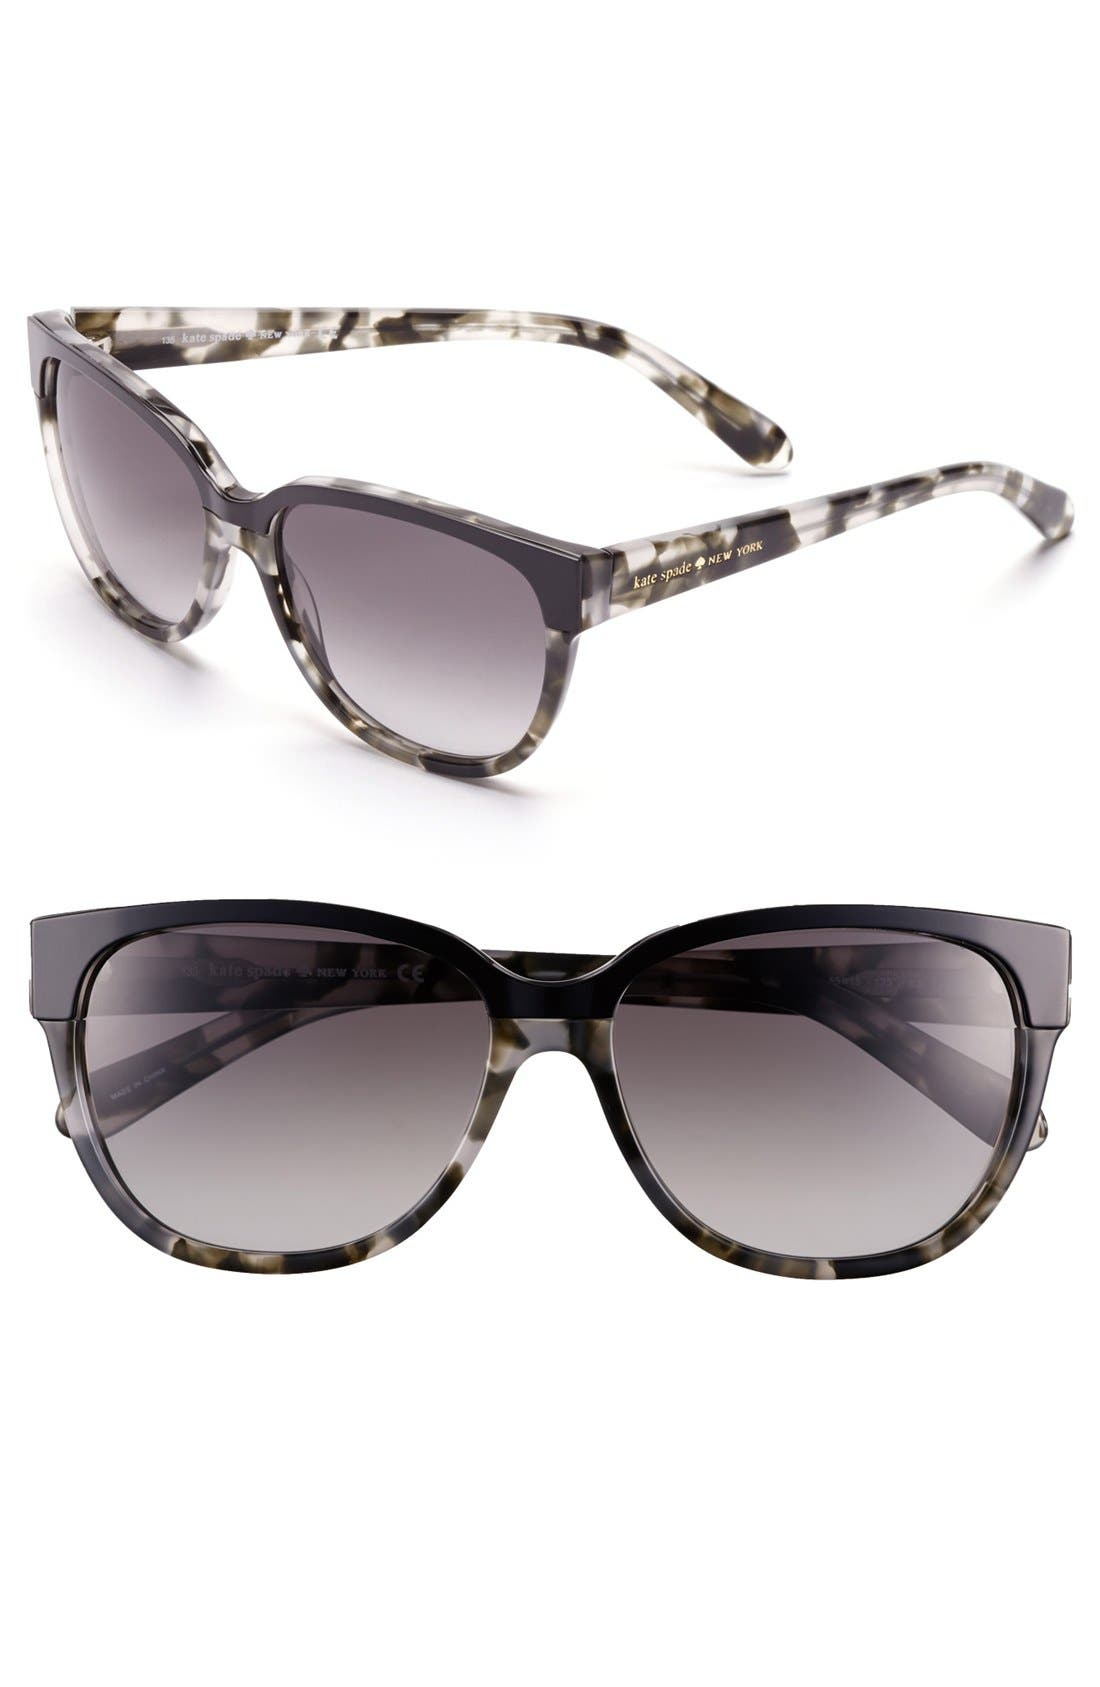 Main Image - kate spade new york 55mm retro sunglasses